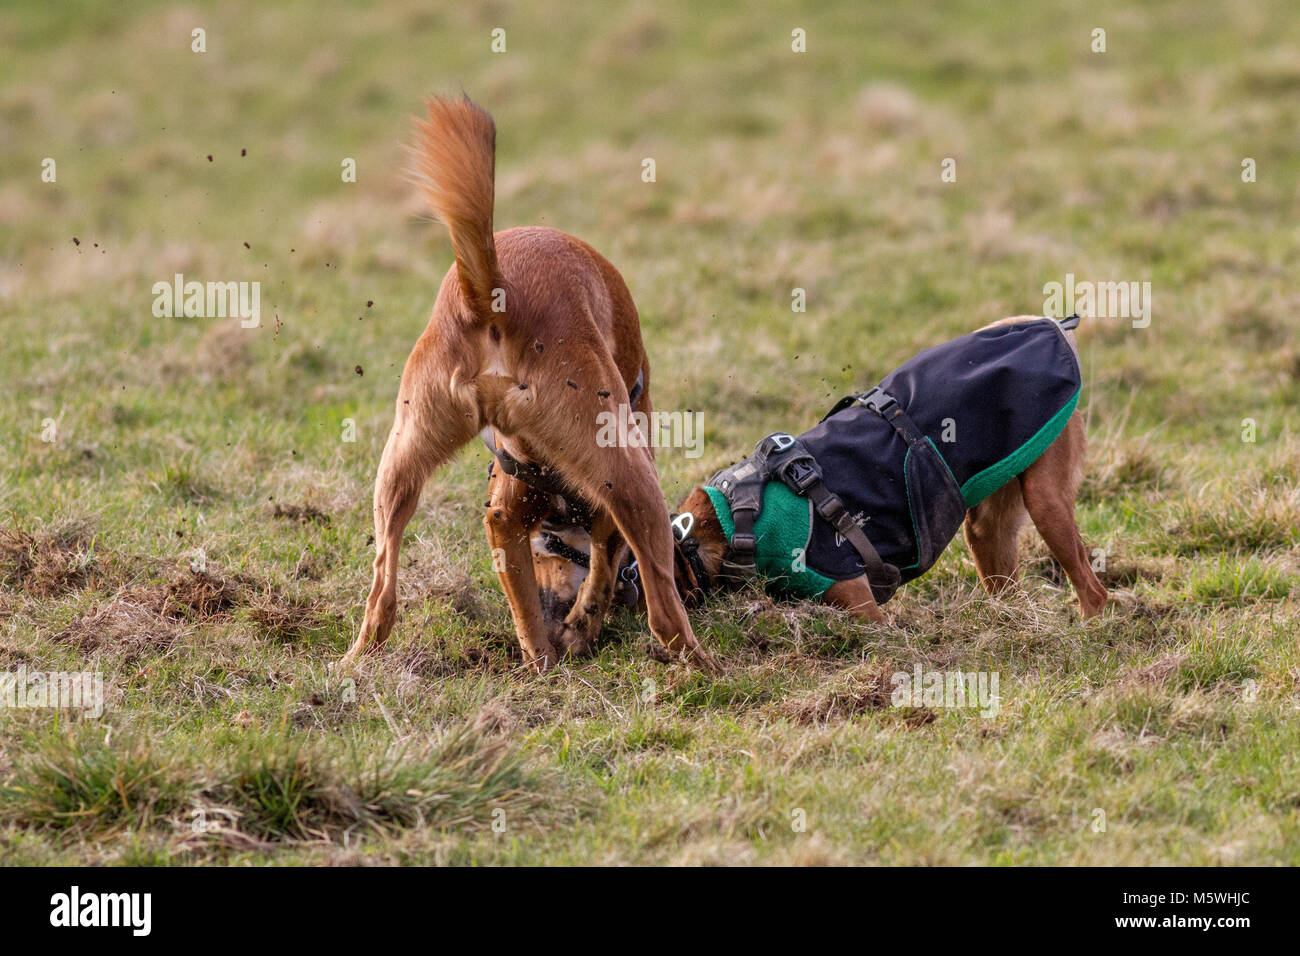 Two dogs digging in the grass, having fun together - Stock Image